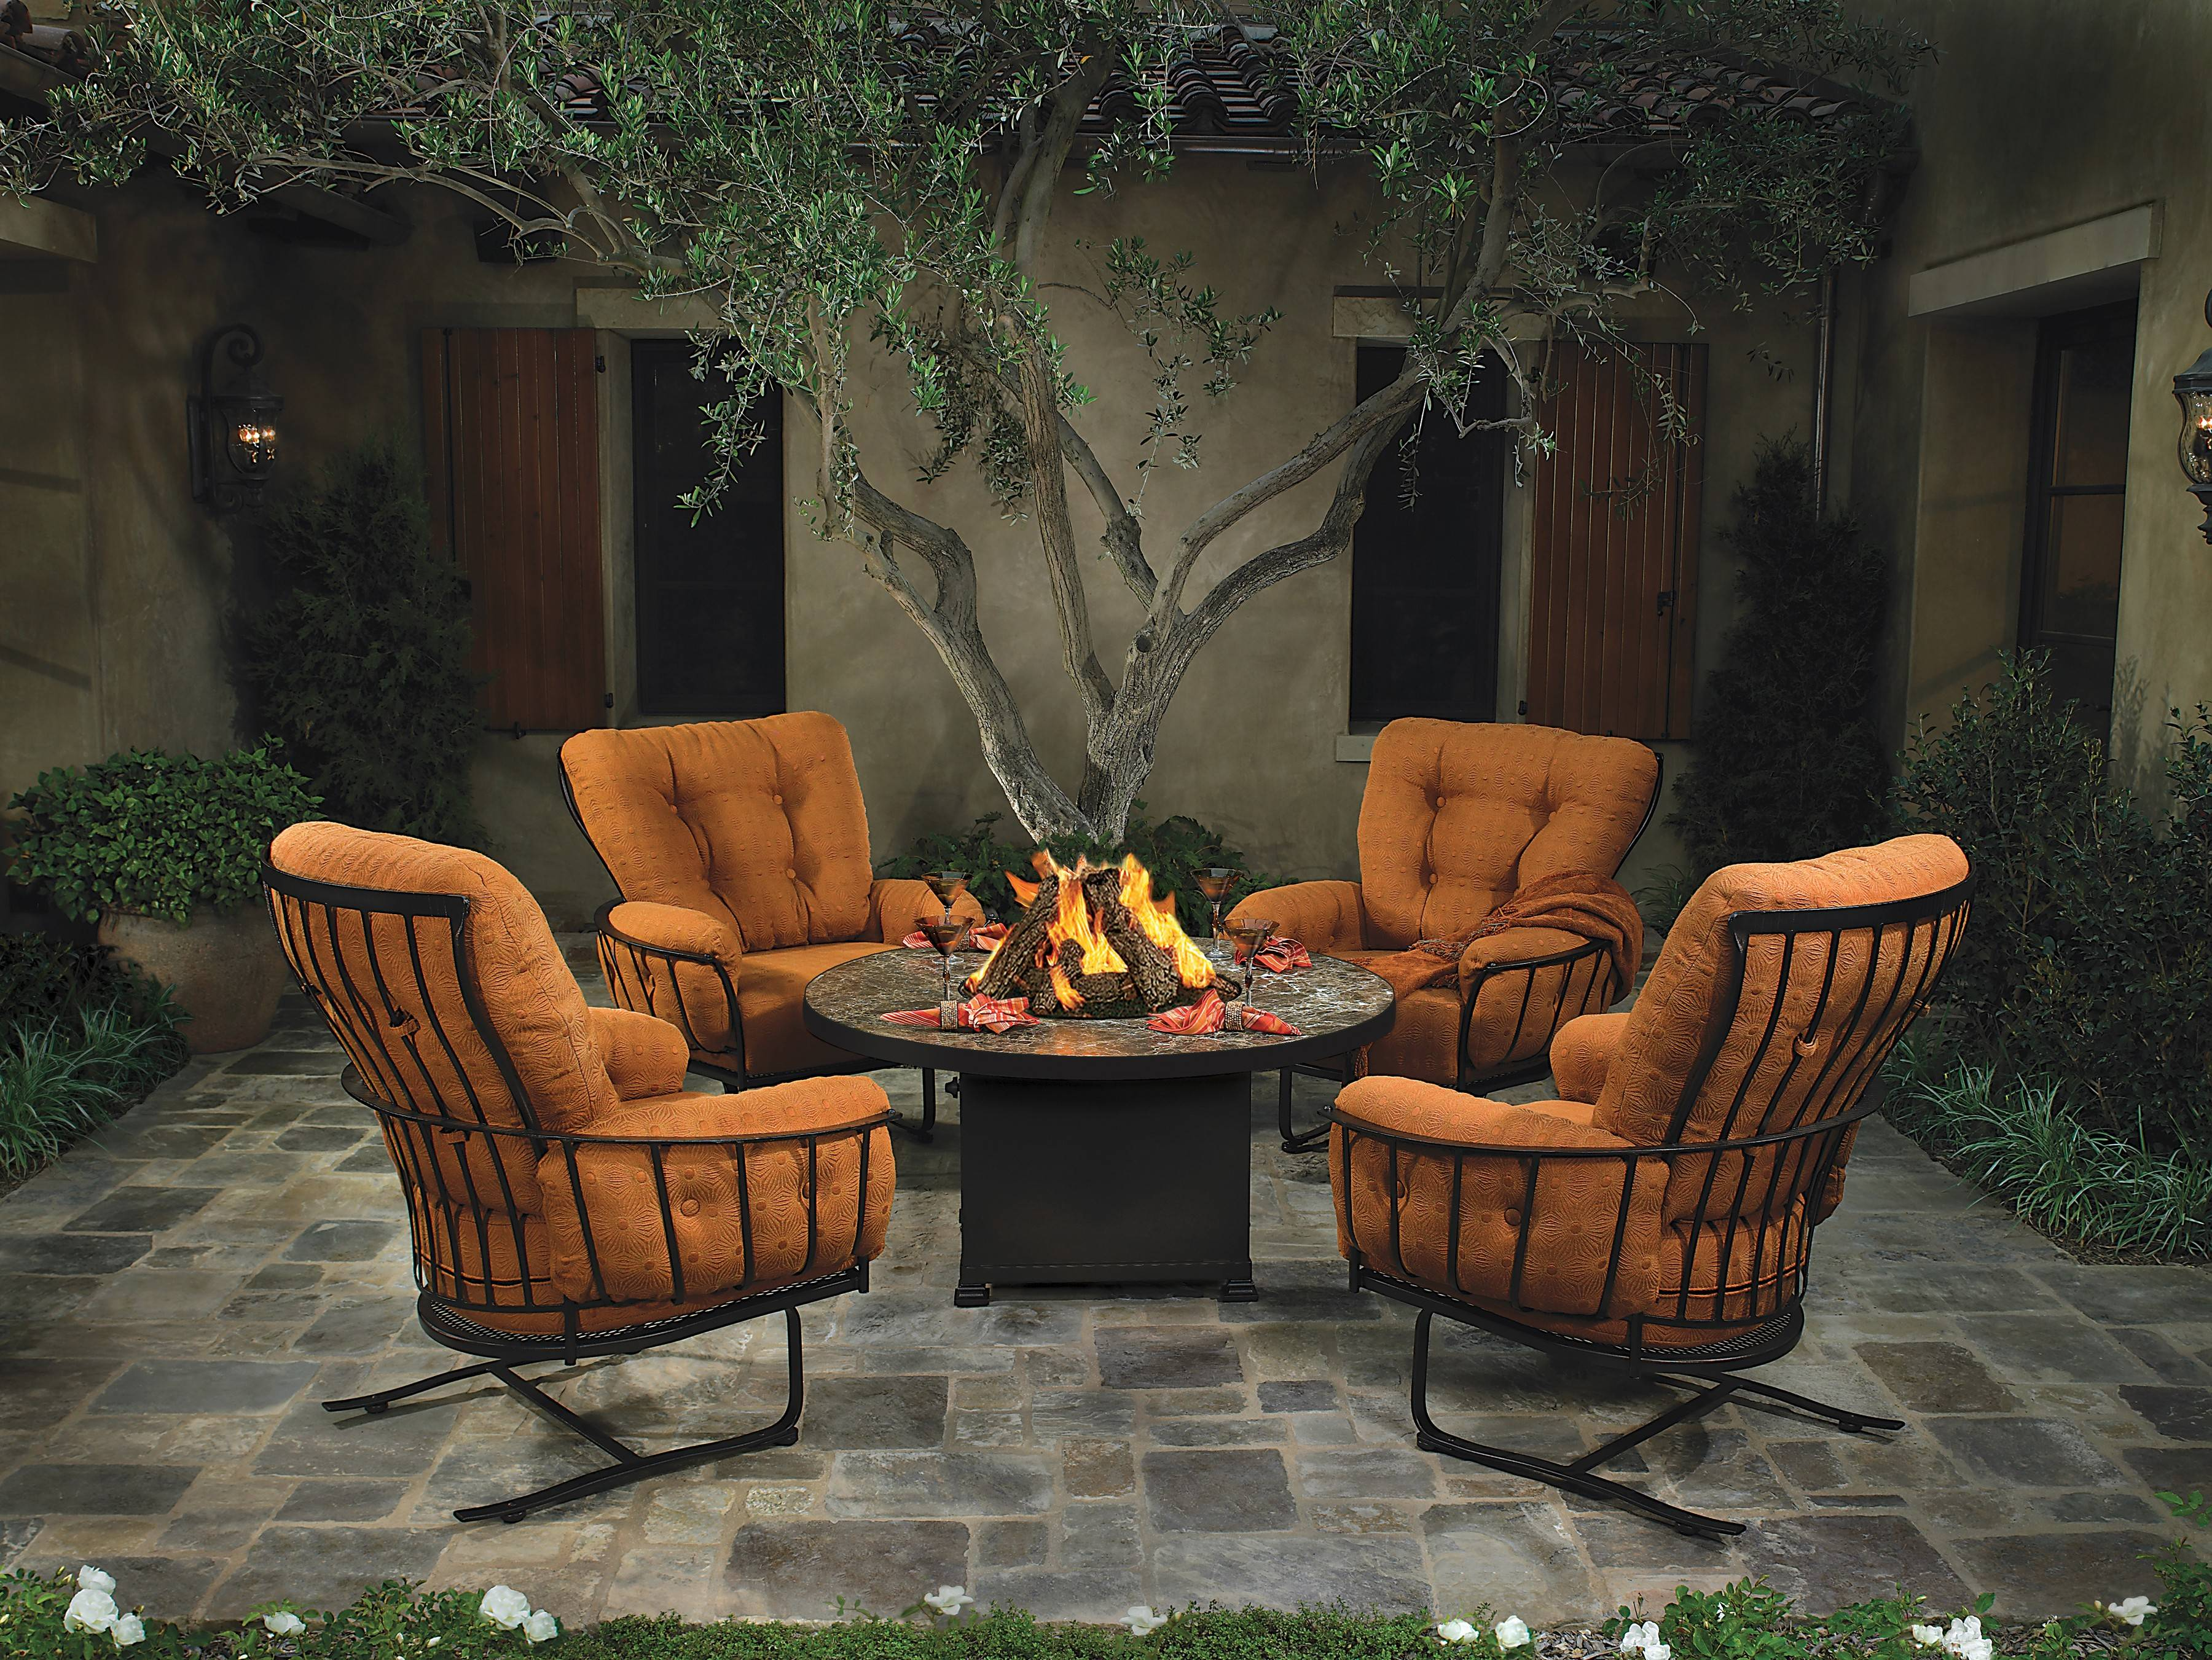 Fire Tables Are A Lower Maintenance Alternative To Wood Burning Fire Pits.